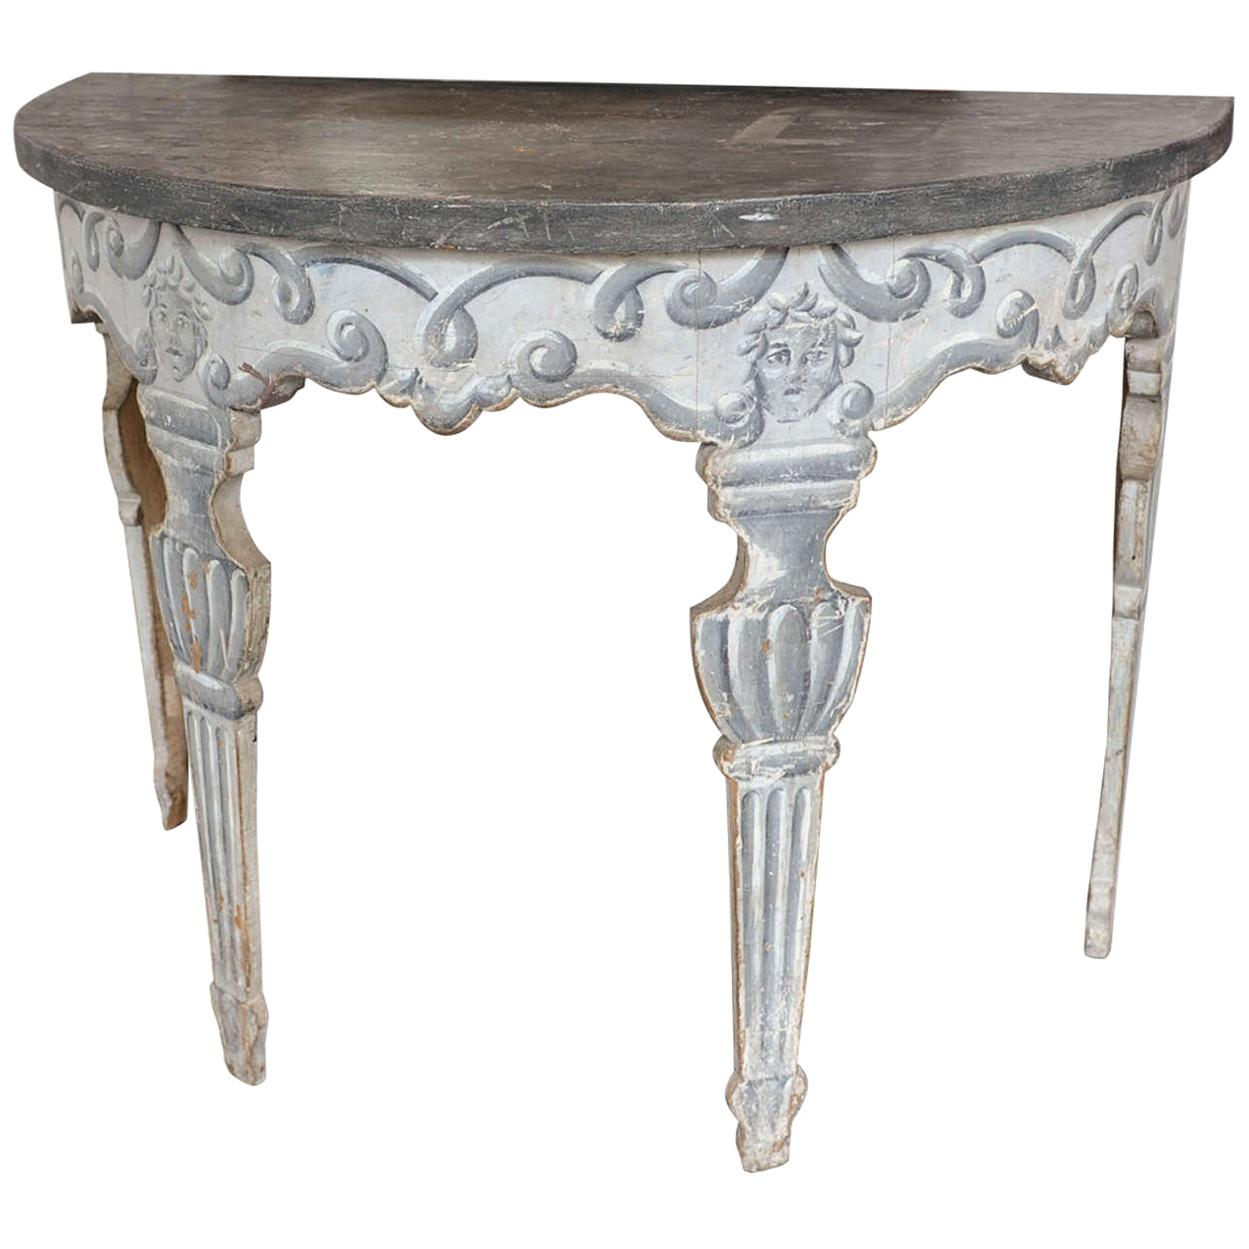 Antique Italian Neoclassical Demilune Side Table from circa 1800